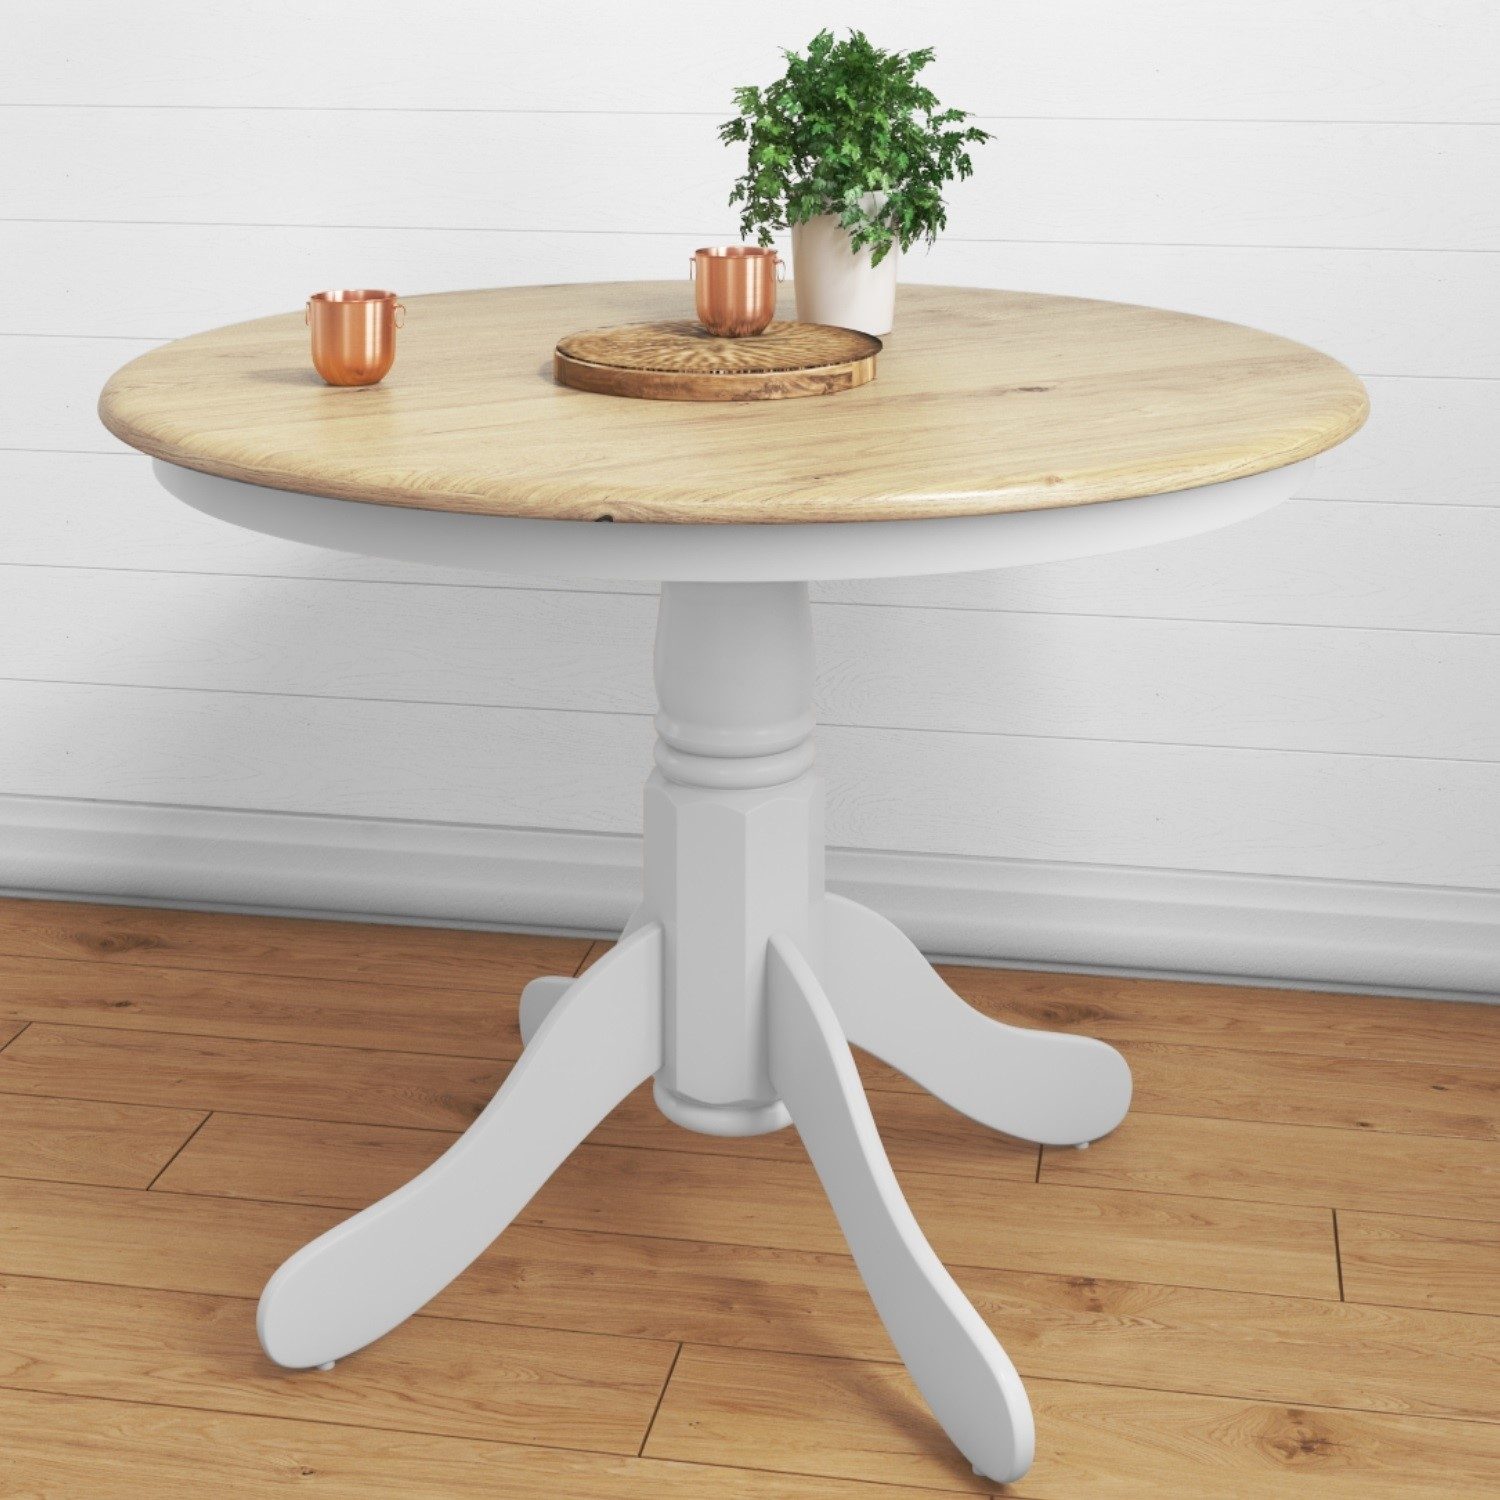 Picture of: Round Pedestal Dining Table In White With Wood Top Seats 4 Rhode Island Furniture123